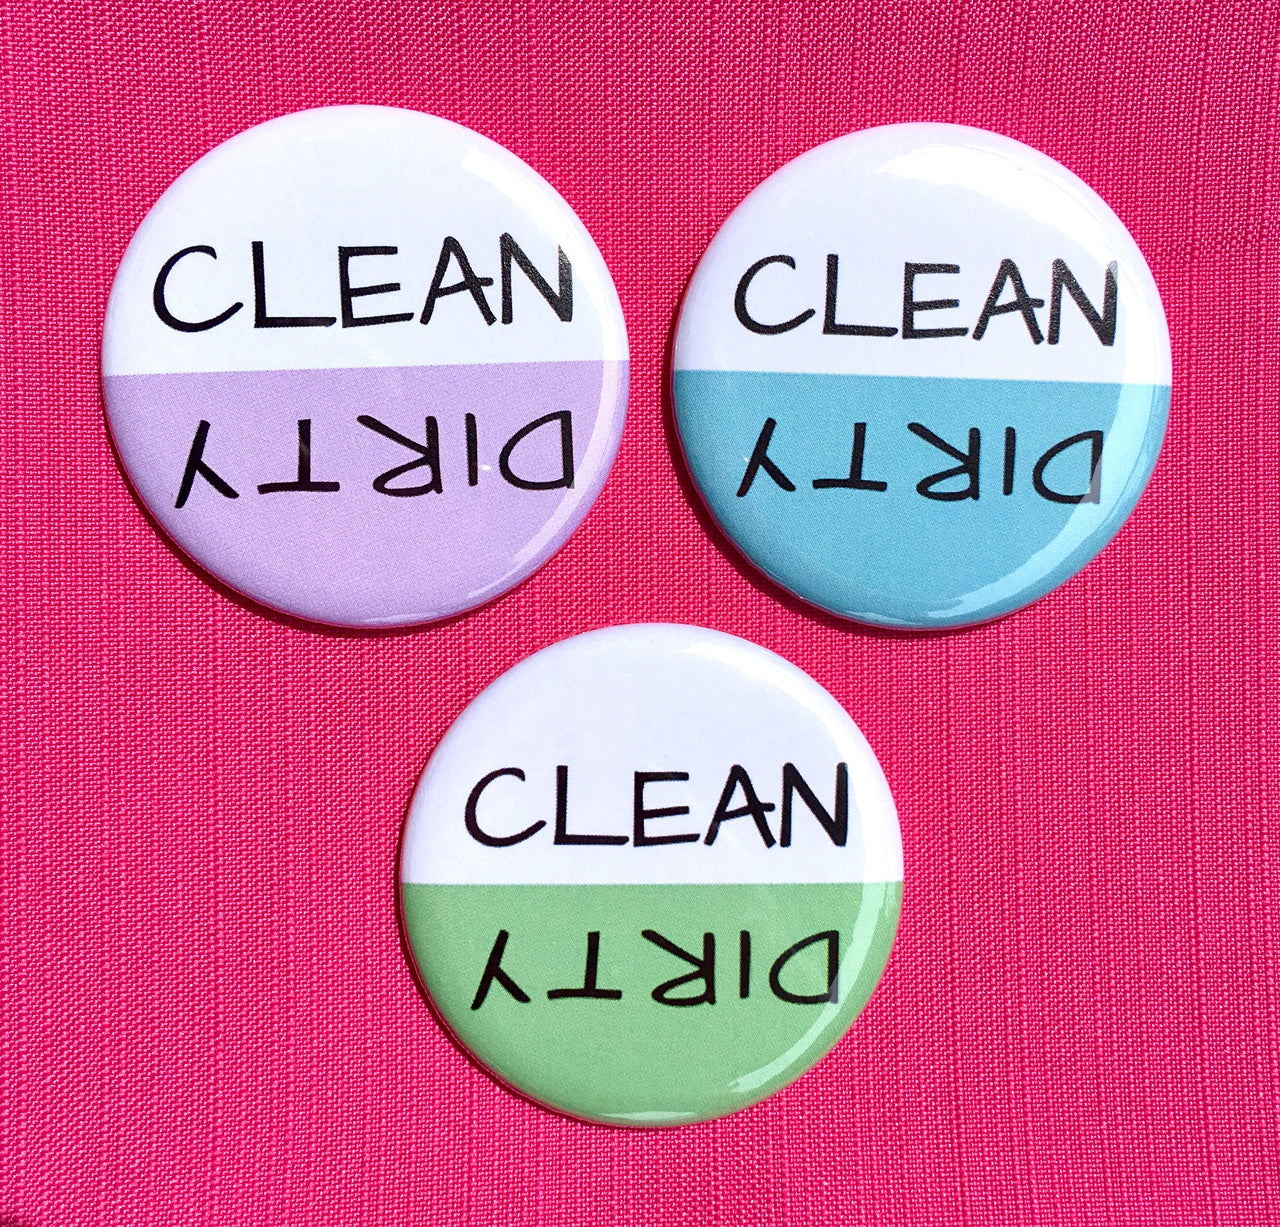 Clean/Dirty dishwasher magnet - Radical Buttons